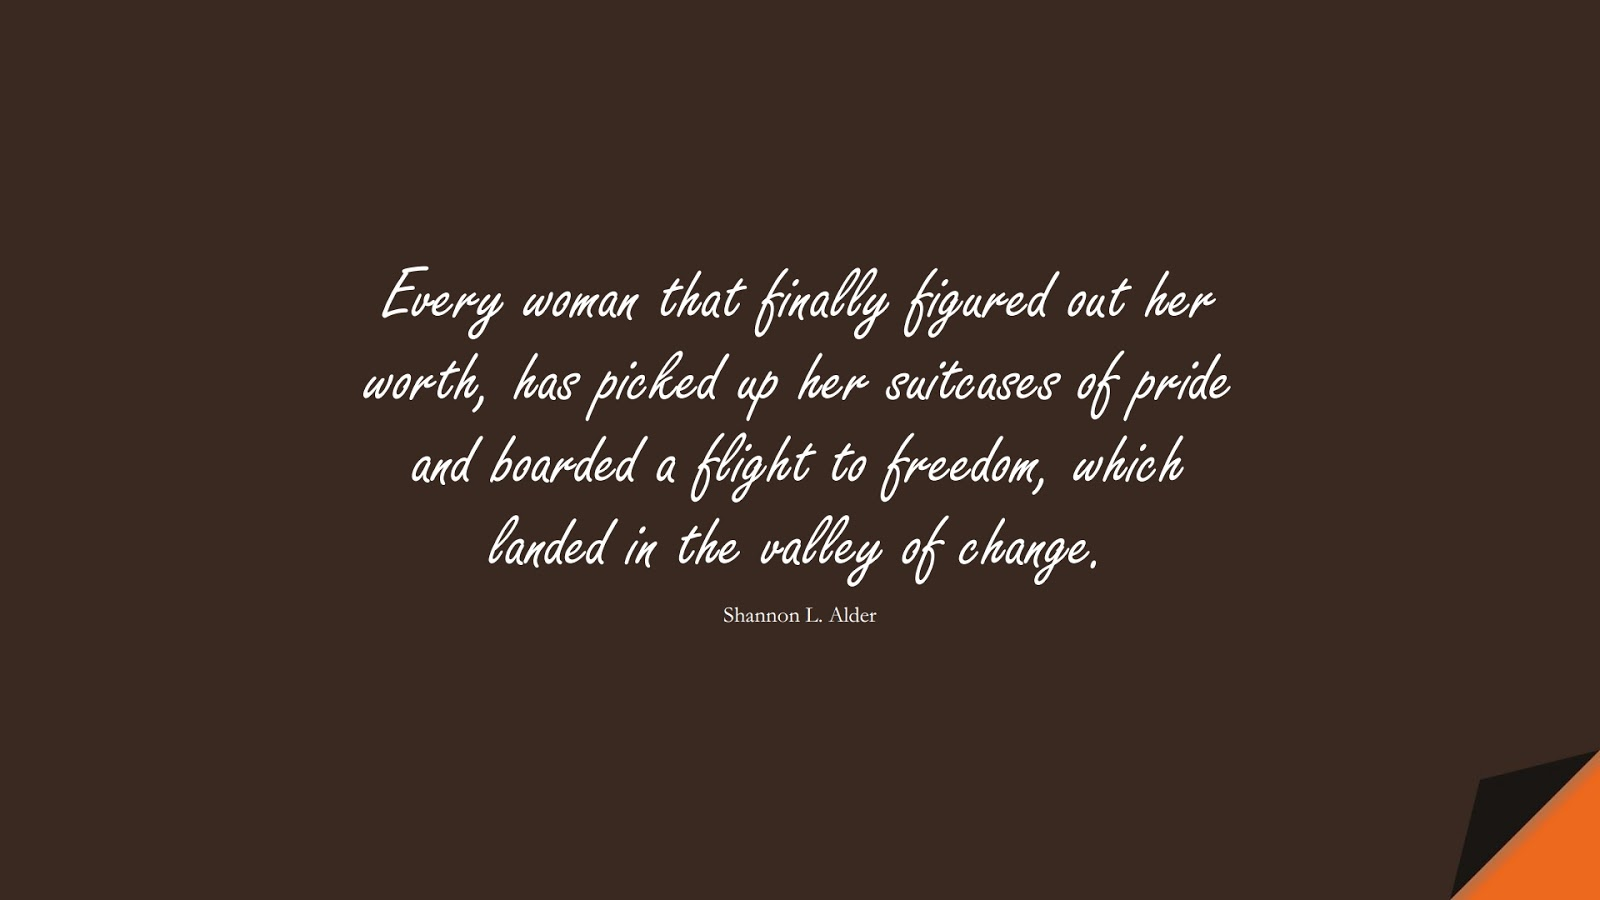 Every woman that finally figured out her worth, has picked up her suitcases of pride and boarded a flight to freedom, which landed in the valley of change. (Shannon L. Alder);  #SelfEsteemQuotes